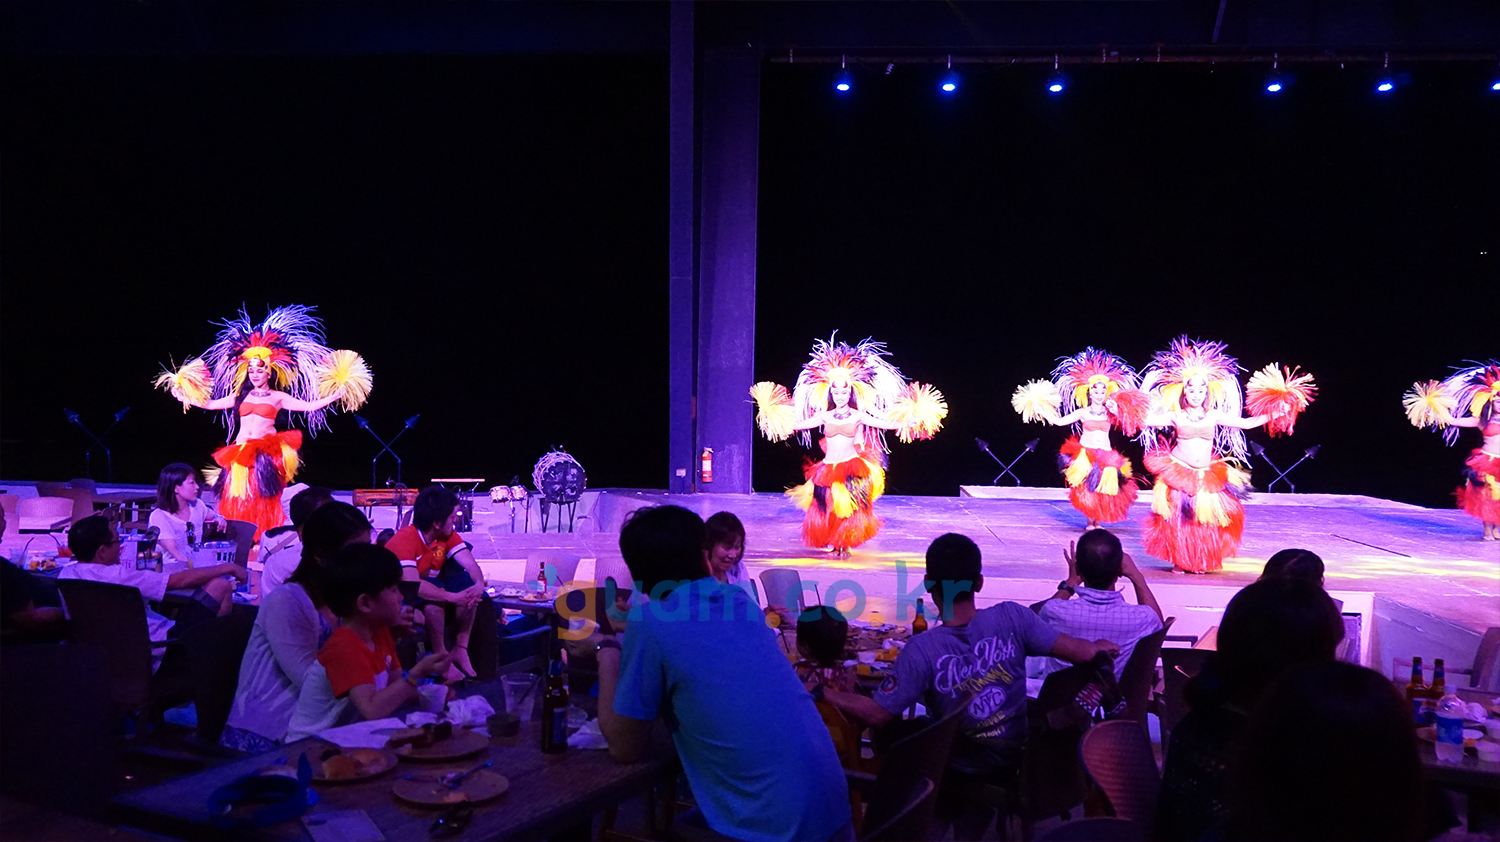 The Beach BBQ Buffet Dinner Show